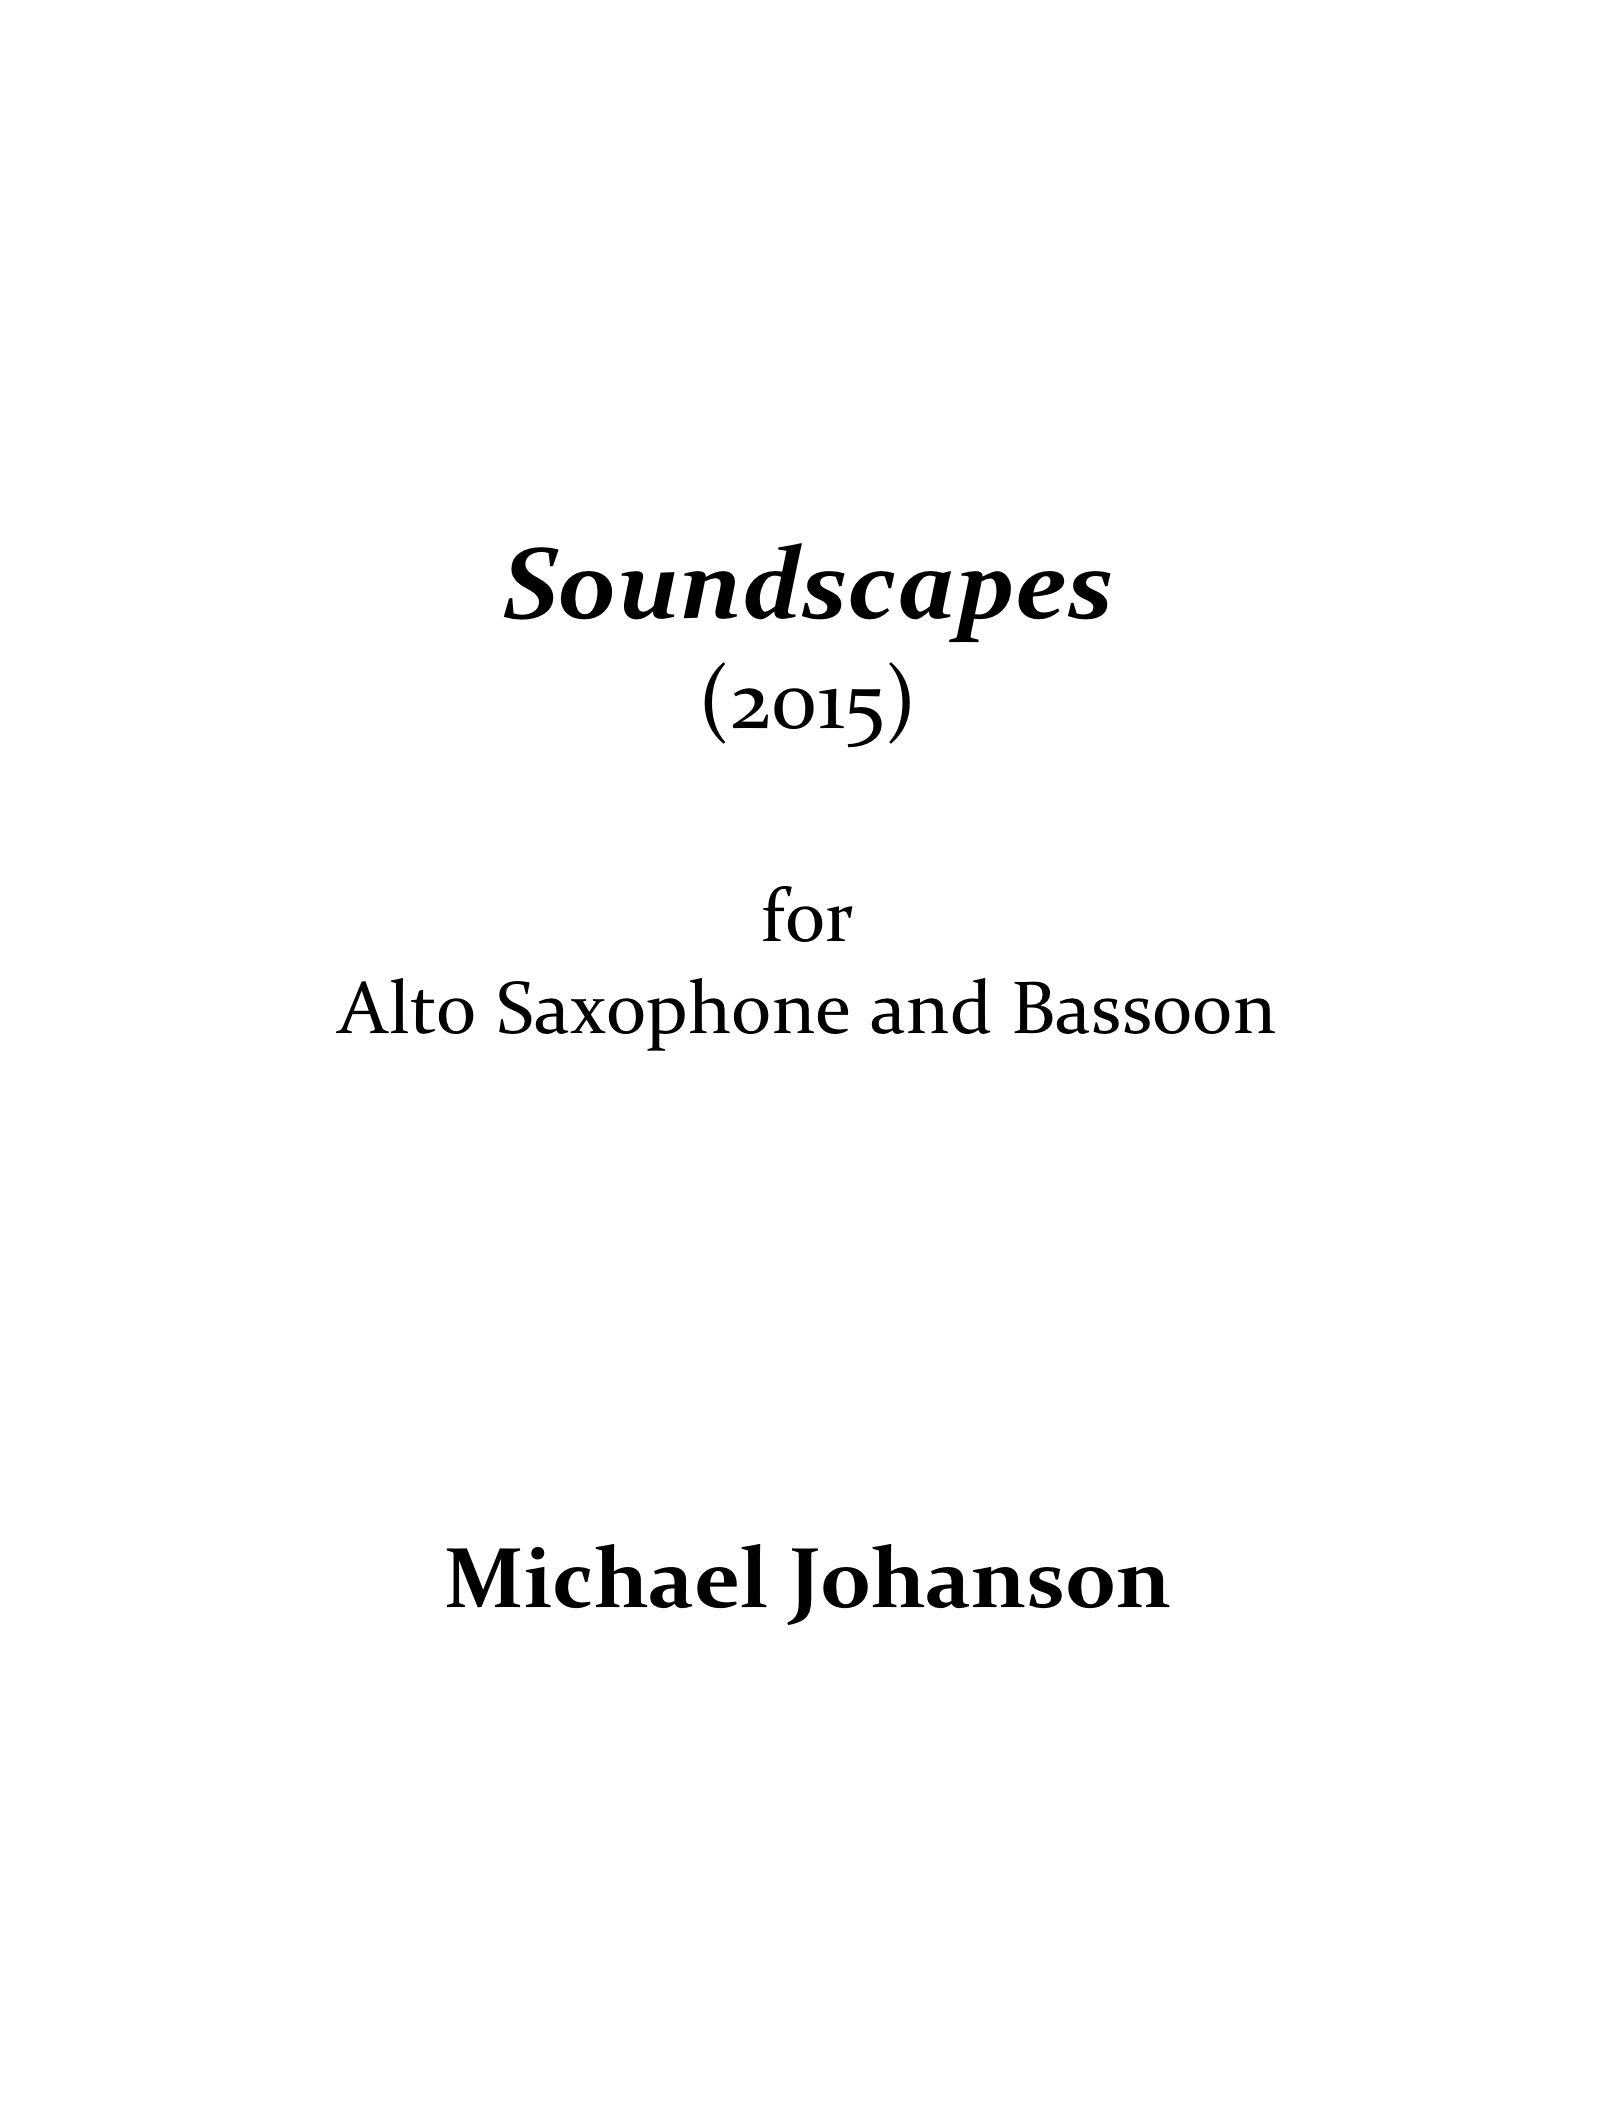 Soundscapes  by Michael Johanson